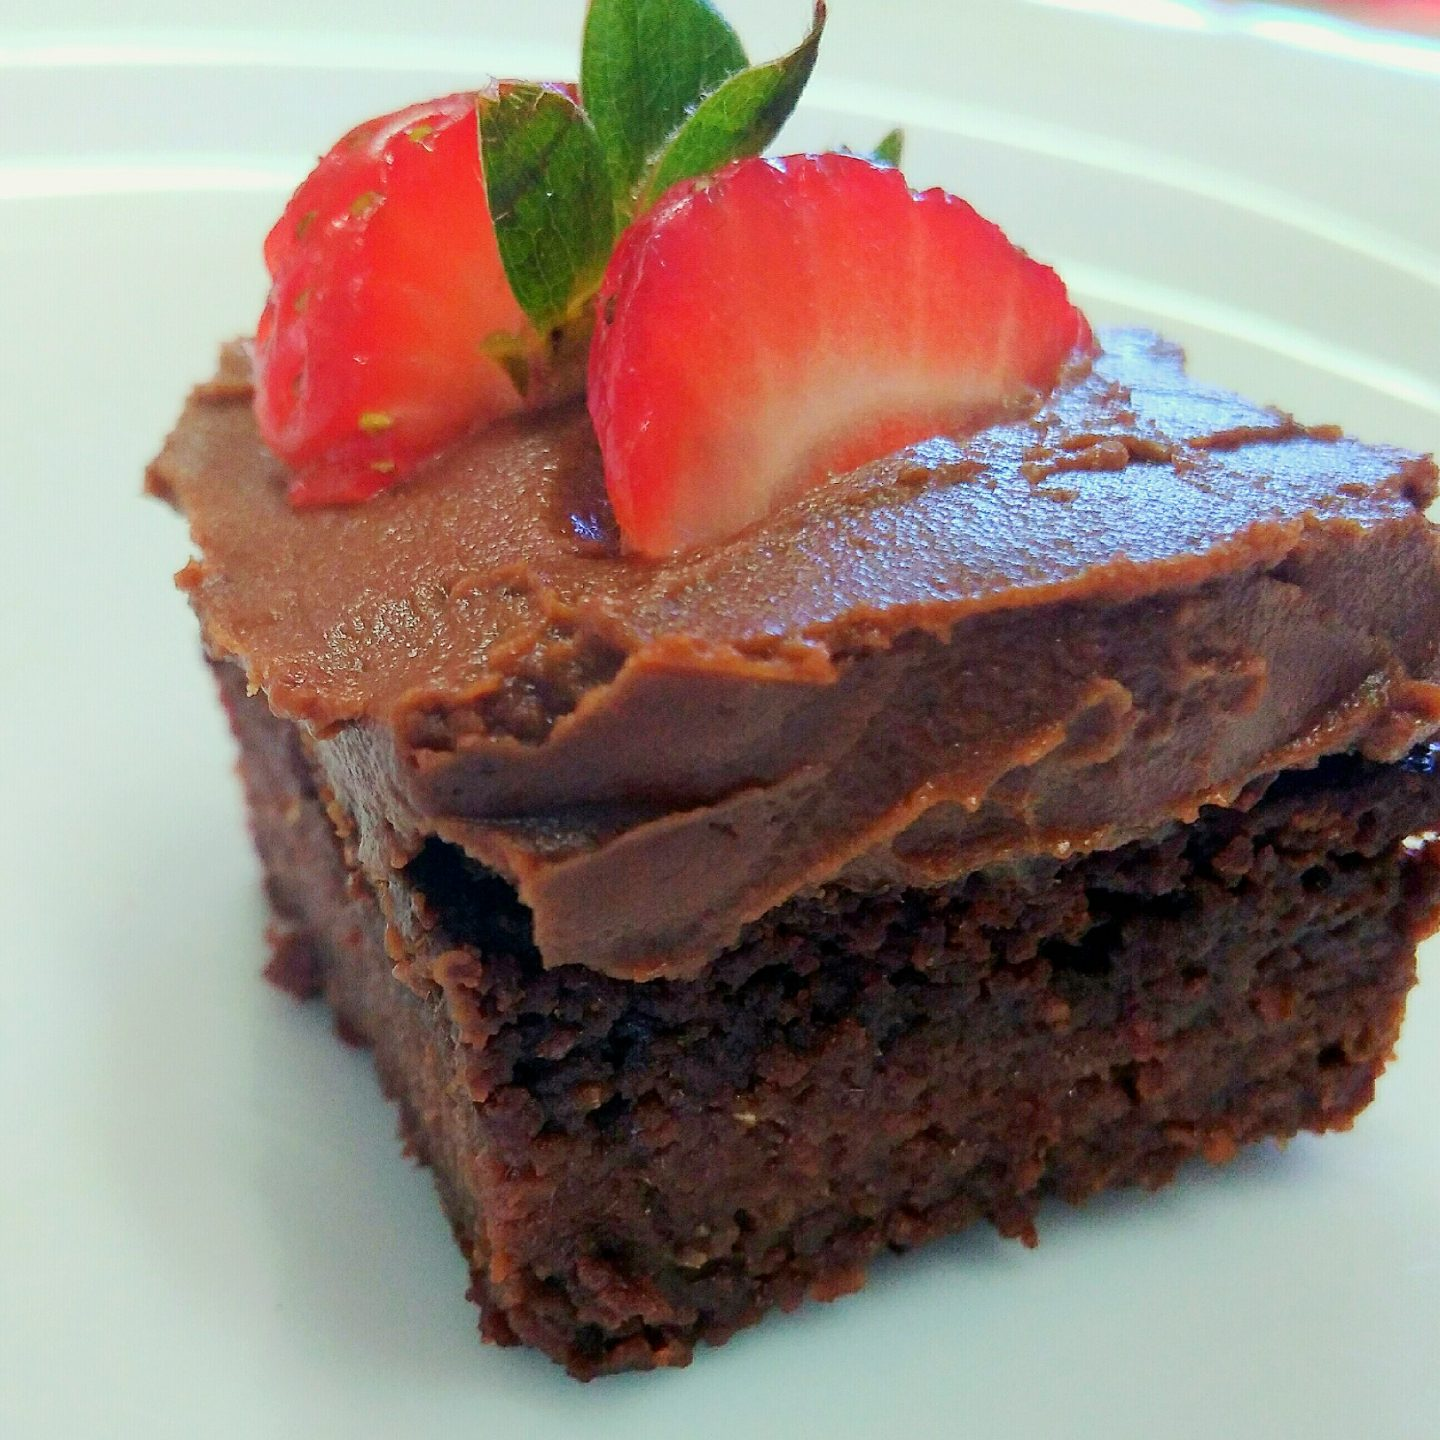 Paleo Chocolate Mousse / Icing